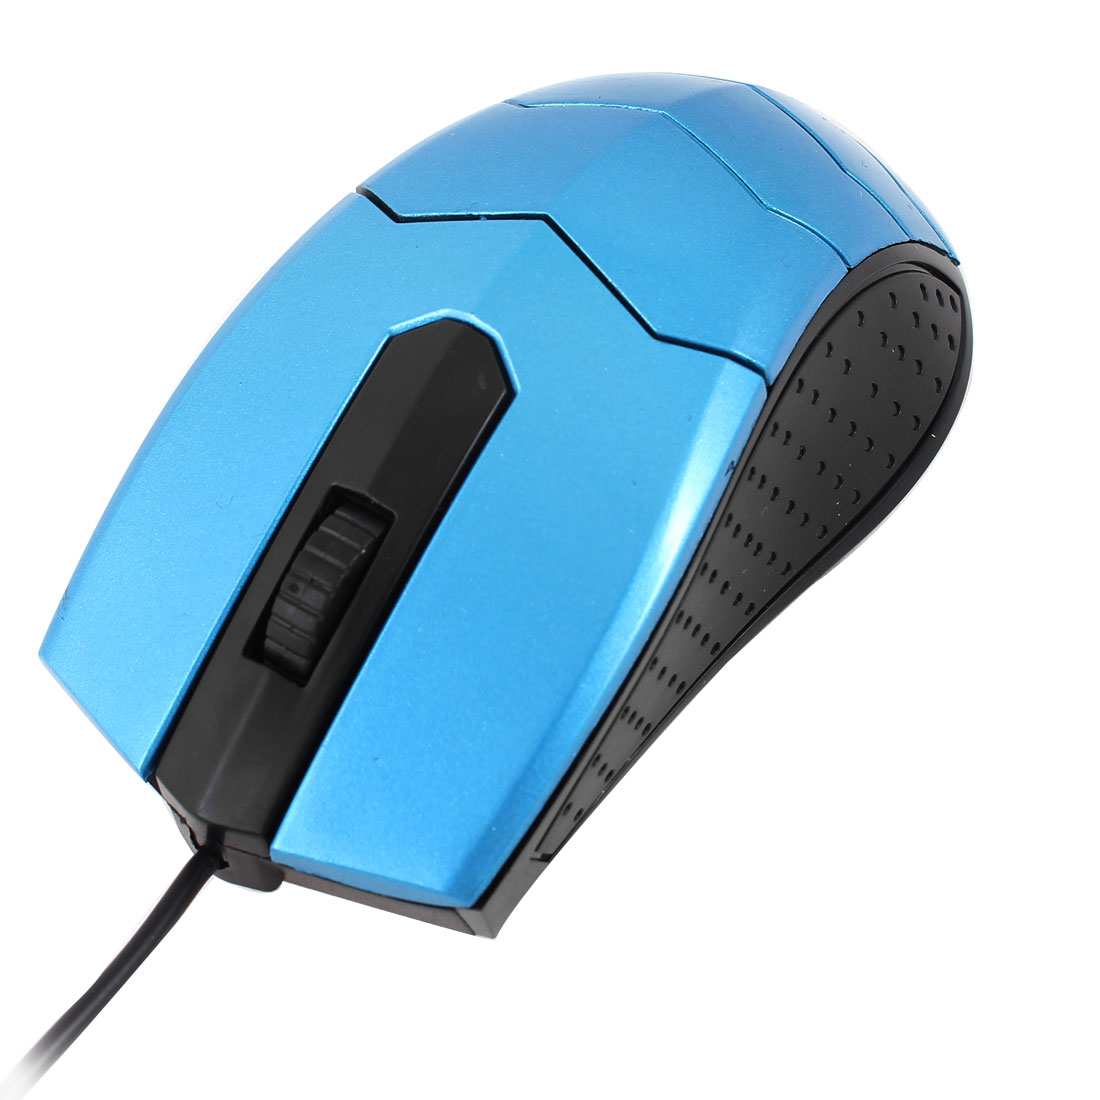 Scroll Wheel 3 Buttons LED Light USB Wired Optical Computer Mouse Blue